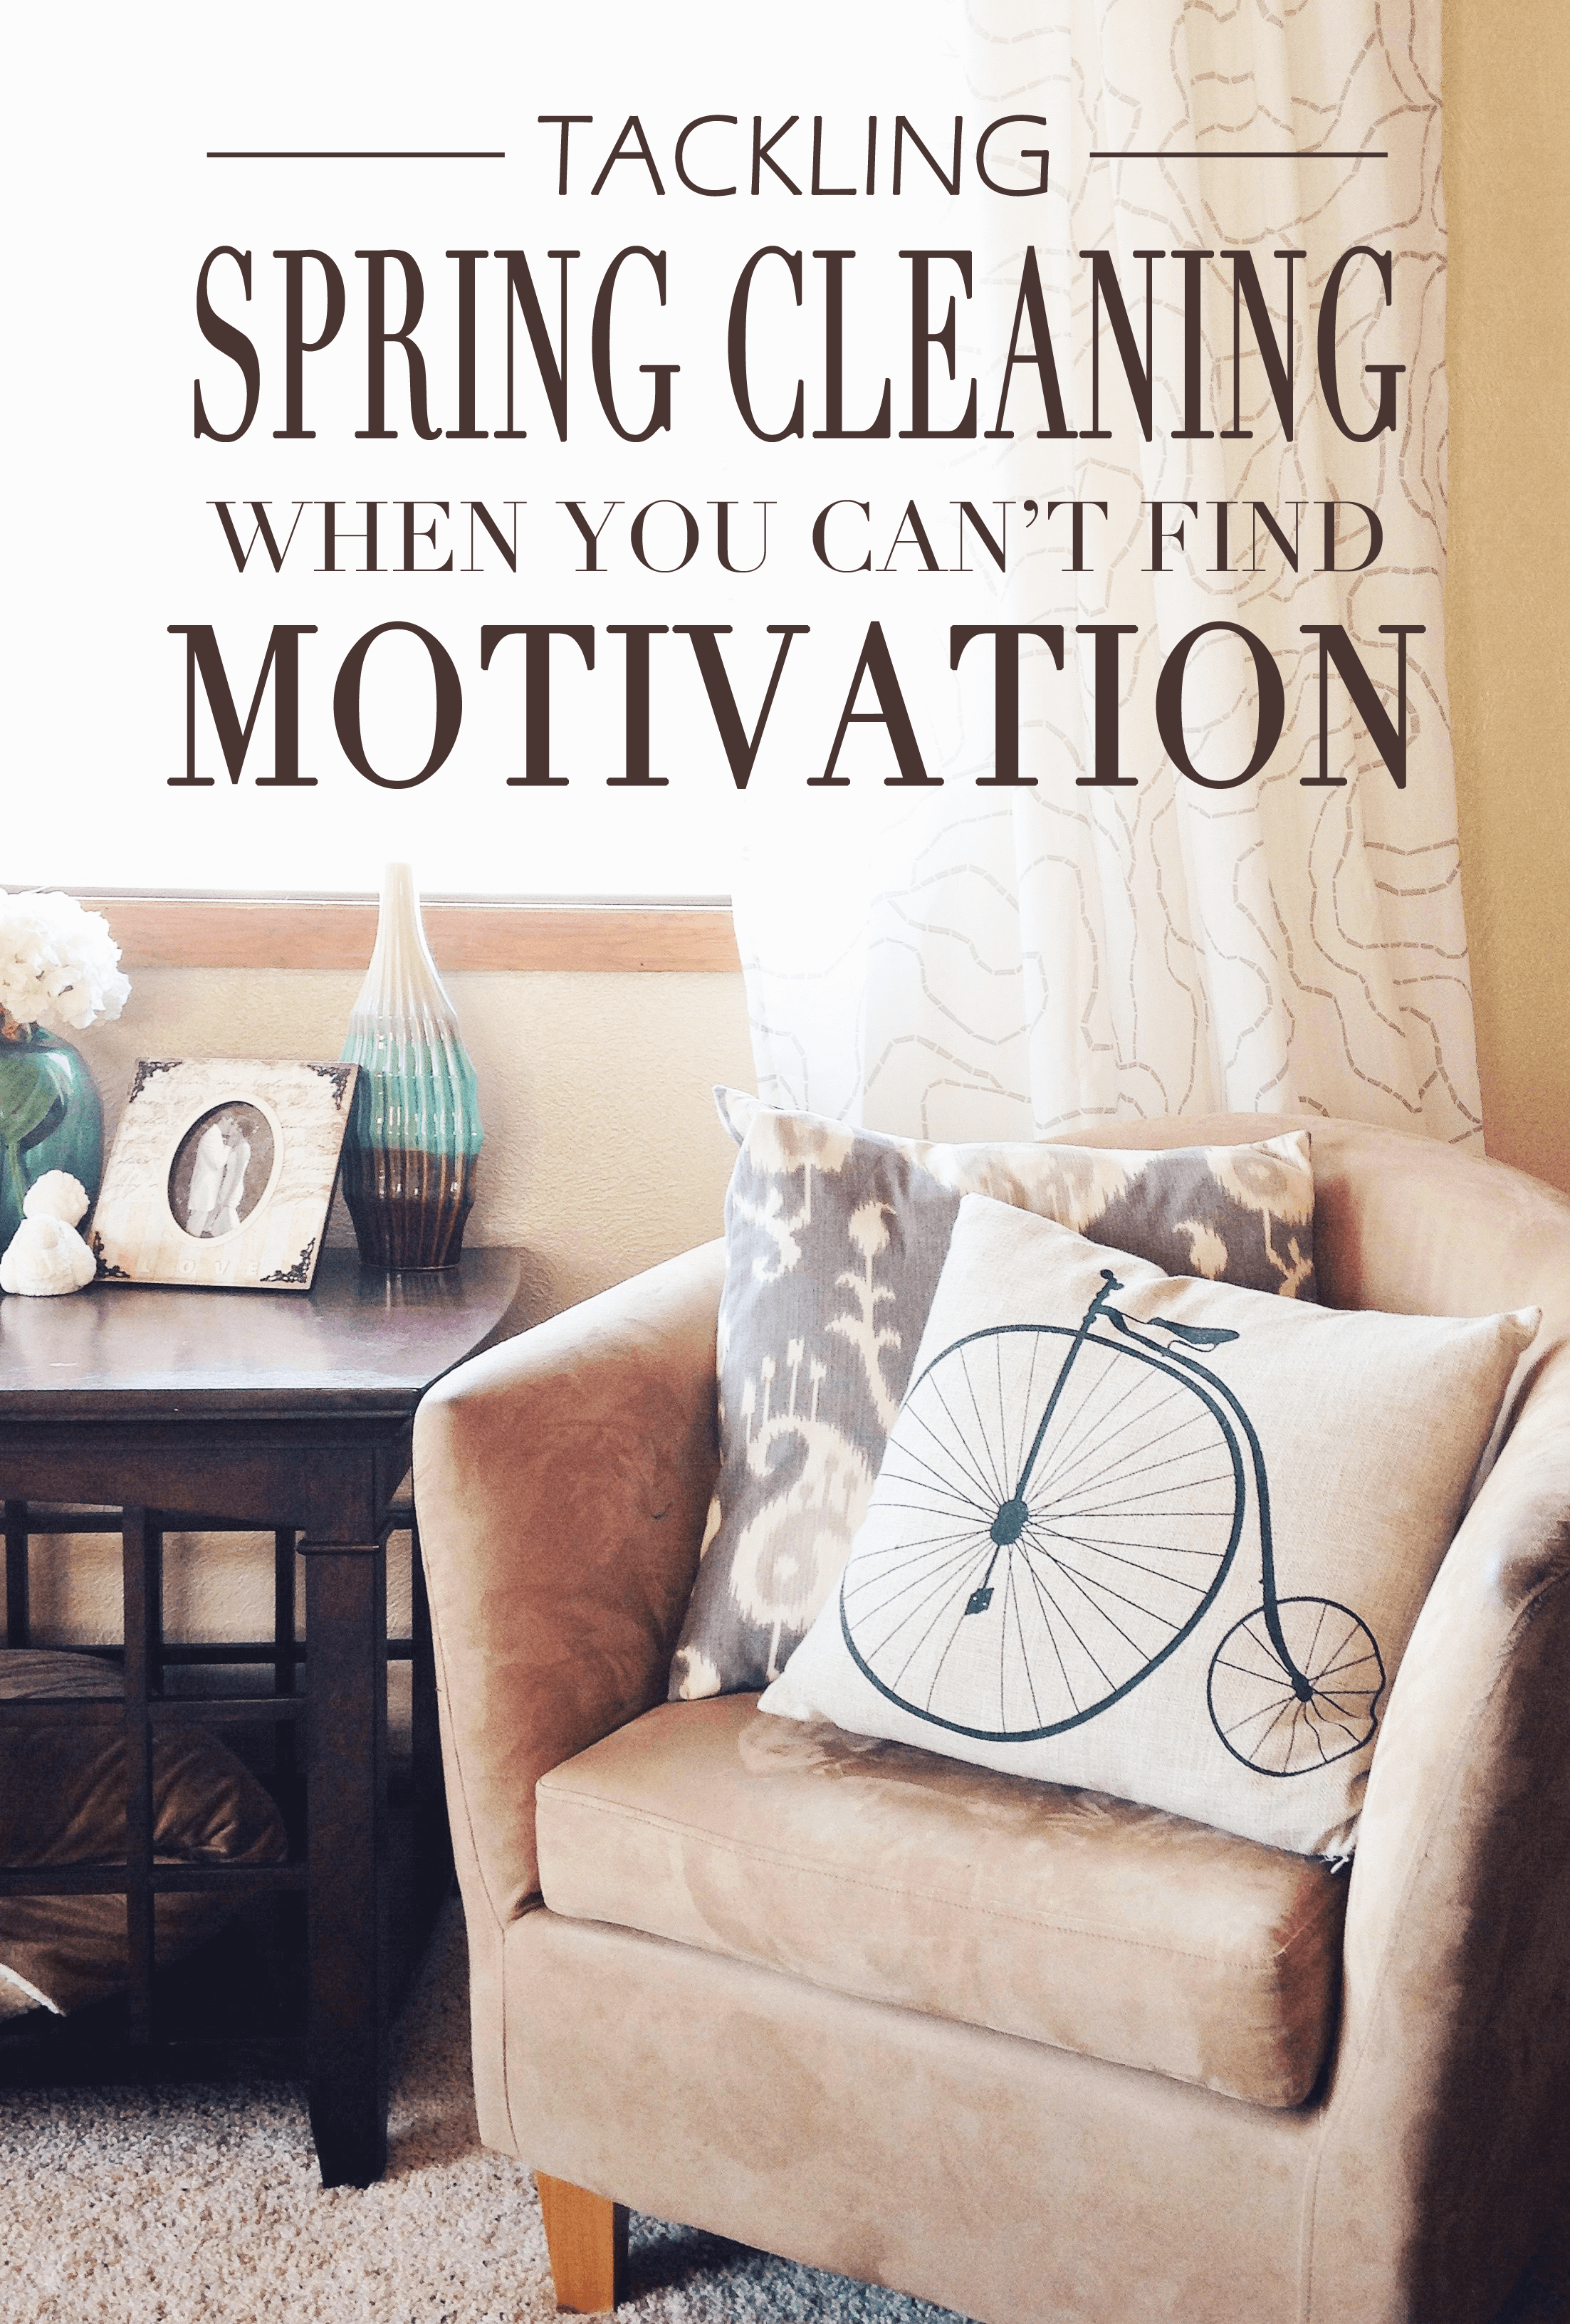 Tackling Spring Cleaning When You Can't Find Motivation